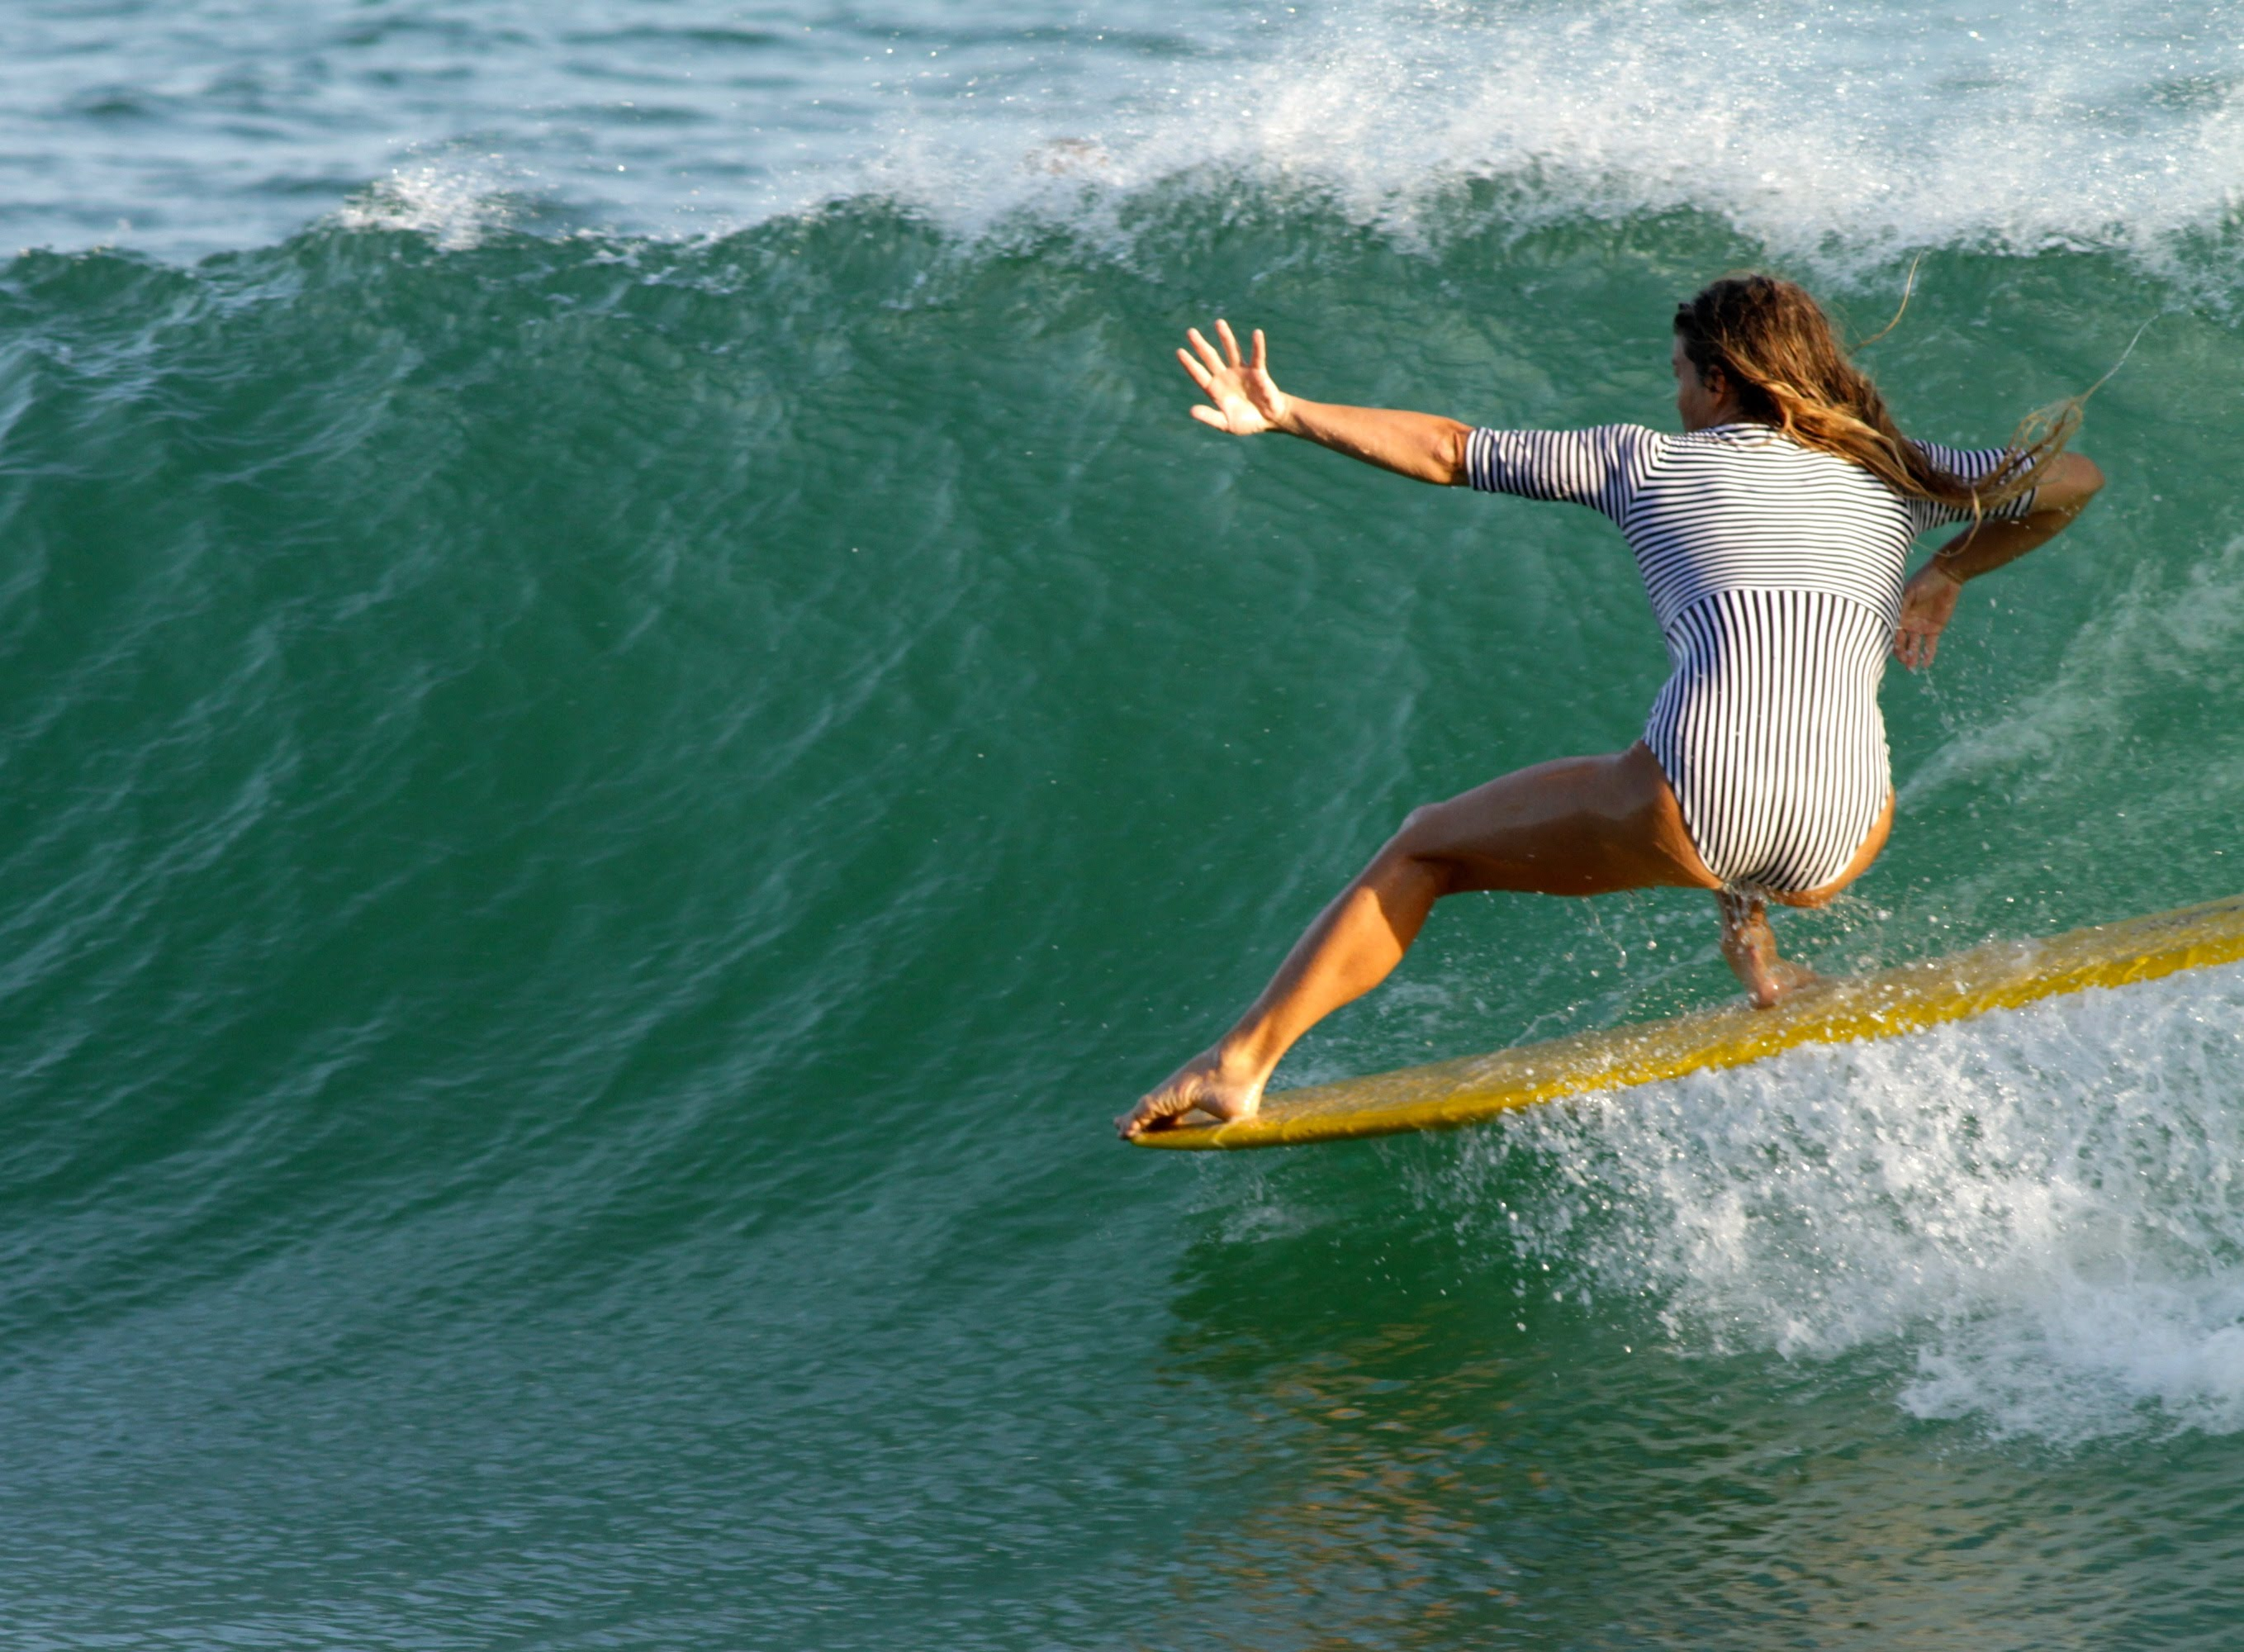 Leah Dawson - Womans Surfing